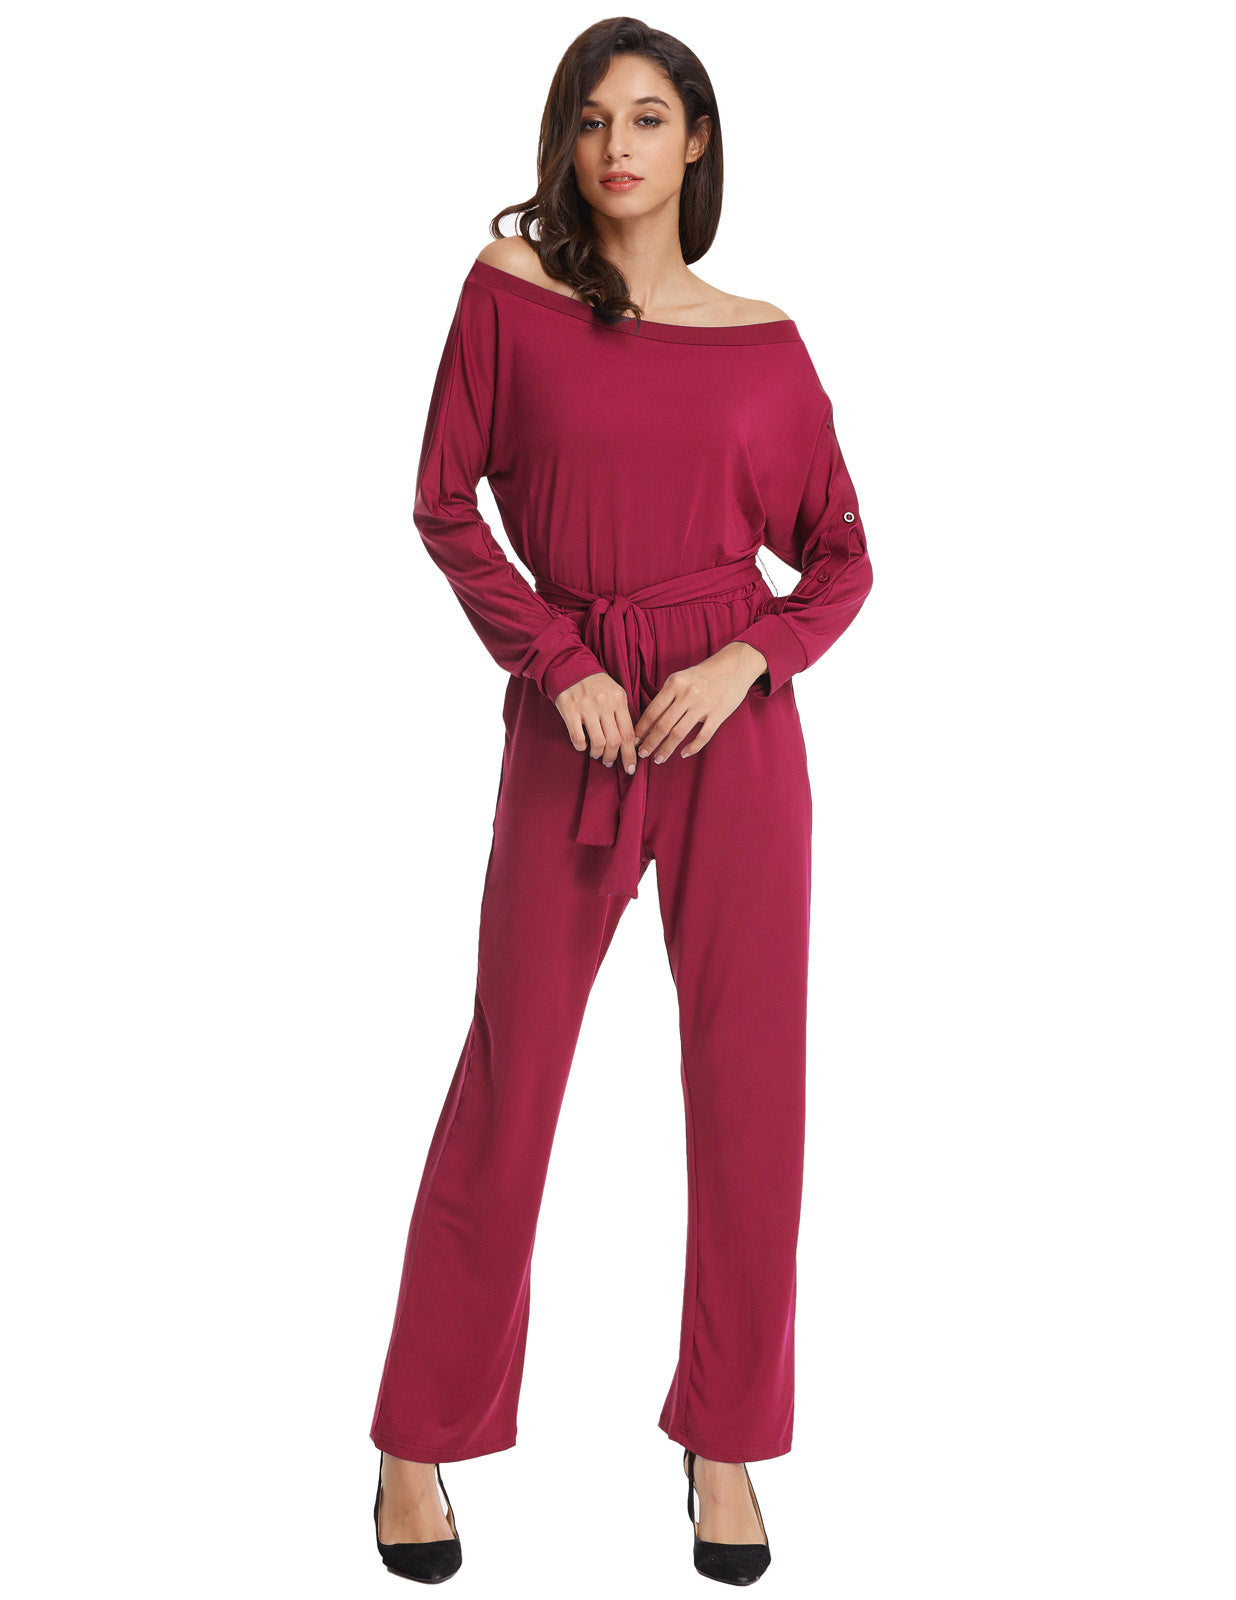 e53a71143b7 Grace Karin Women s Asymmetrical Long Sleeve Off the Shoulder High Stretchy  Jumpsuits Romper Jumper  Wine Red